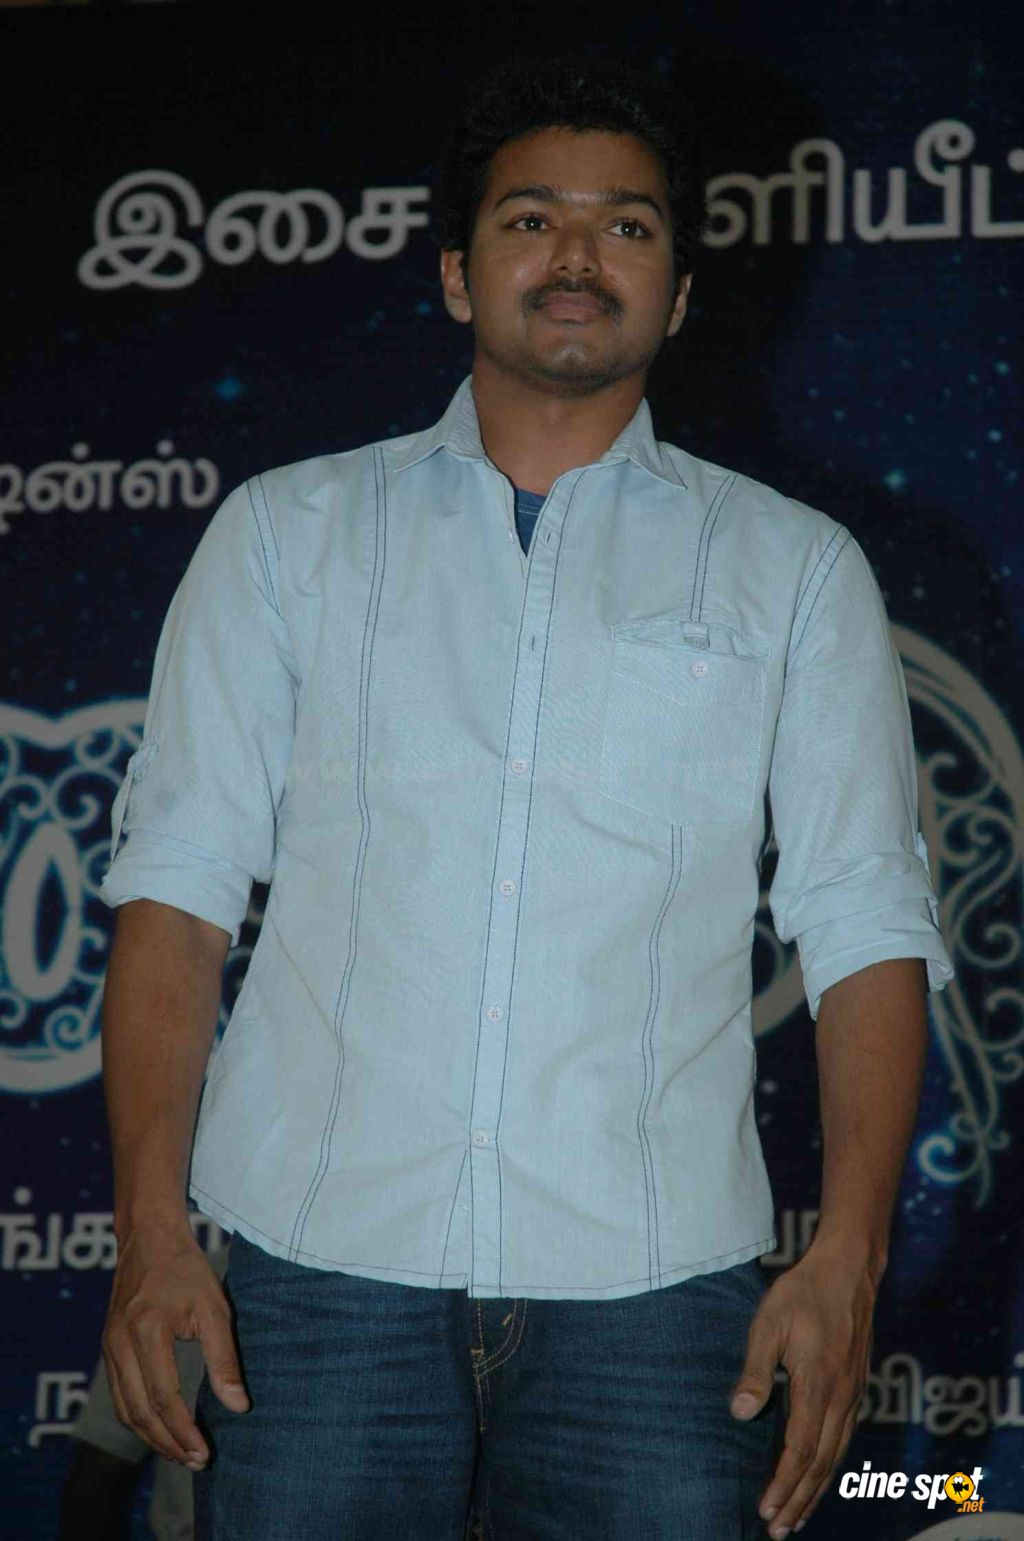 Vijay actor photos Vijay tamil star photos Vijay new photos (7)